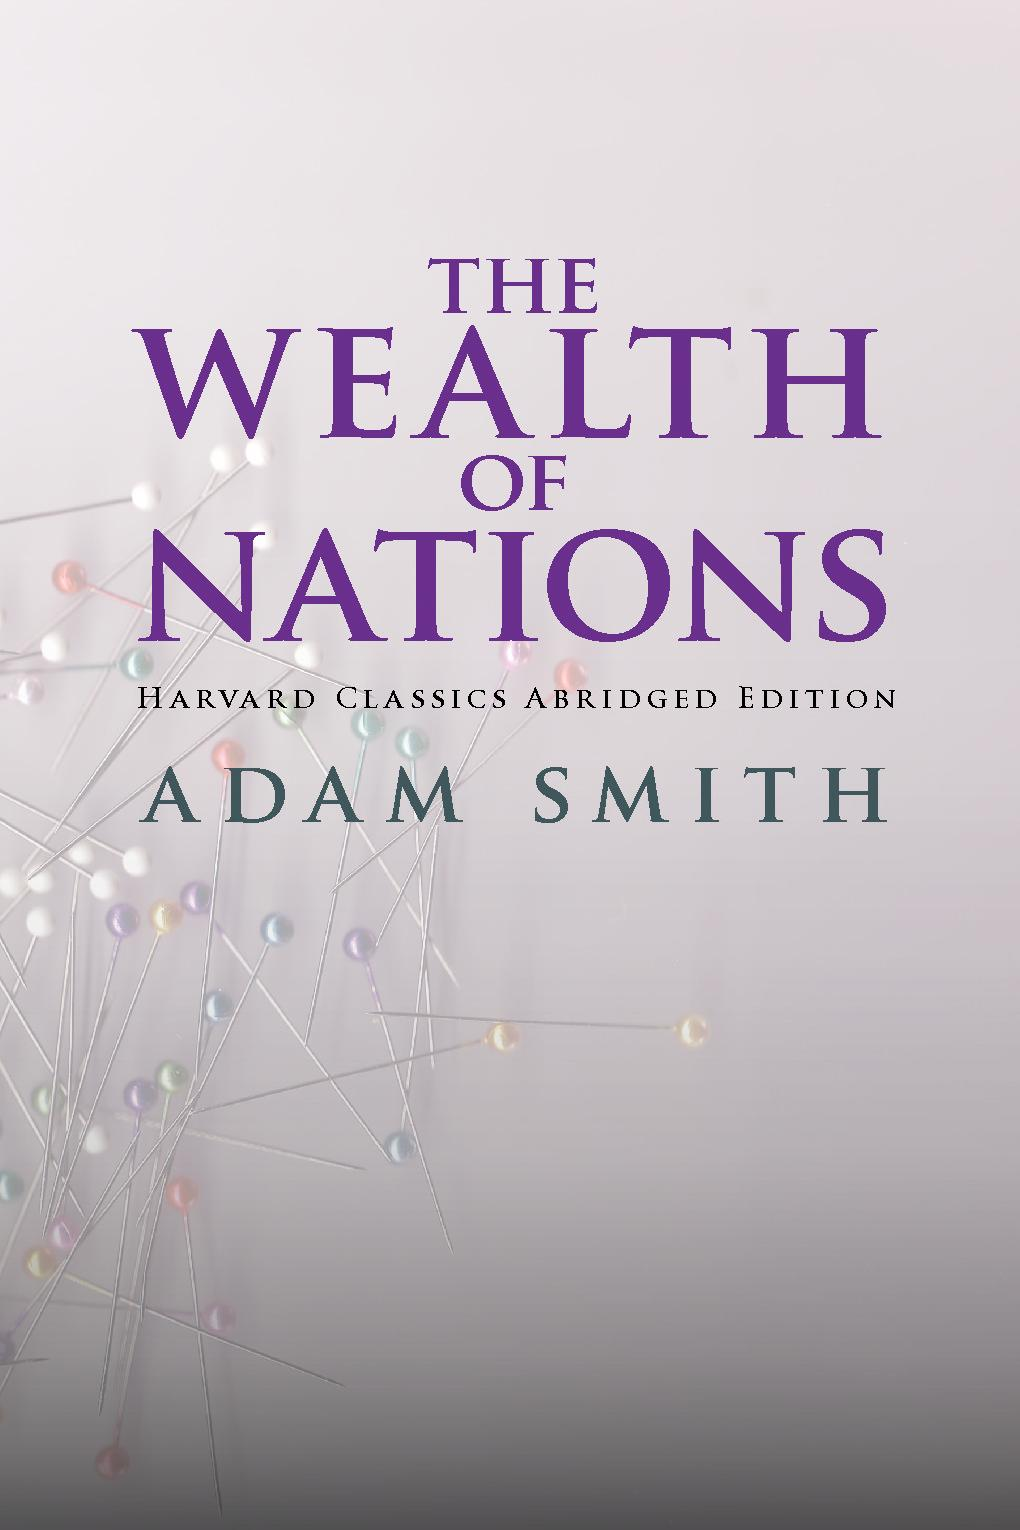 The Wealth of Nations abridged EB9787770610417